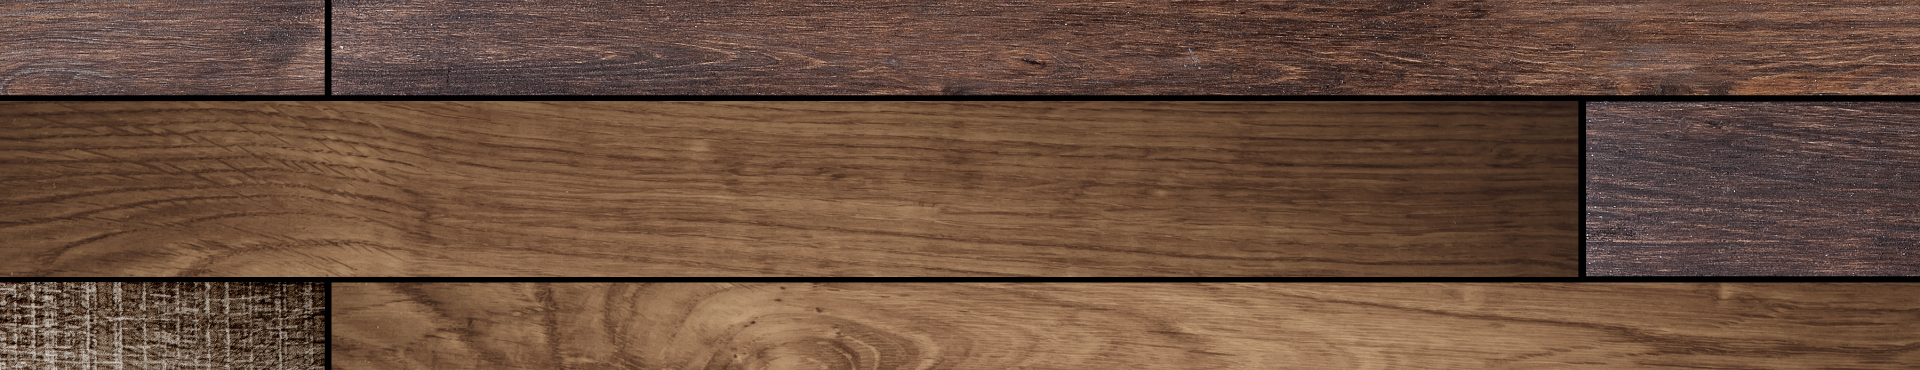 Wood-Texture-With-Light-Wallpaper-PC-823